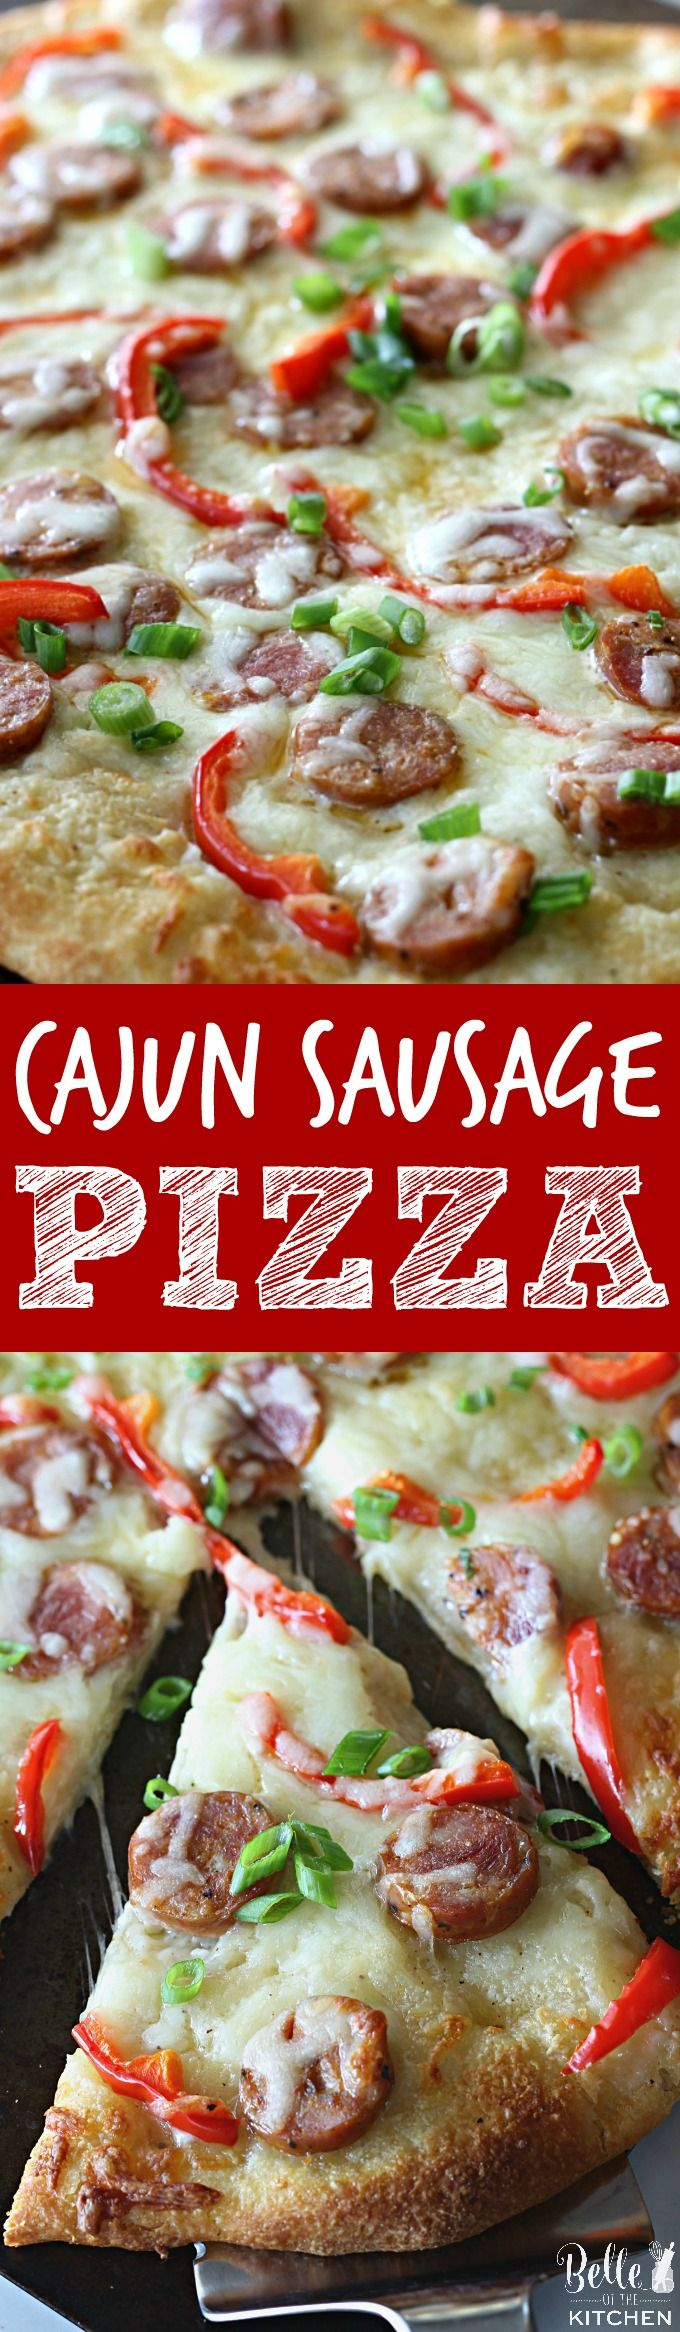 This Cajun Sausage Pizza starts with your favorite pizza dough, then gets piled with a creamy homemade sauce, andouille sausage, peppers, and gooey cheese. #SavorYourSummerRecipes #ad